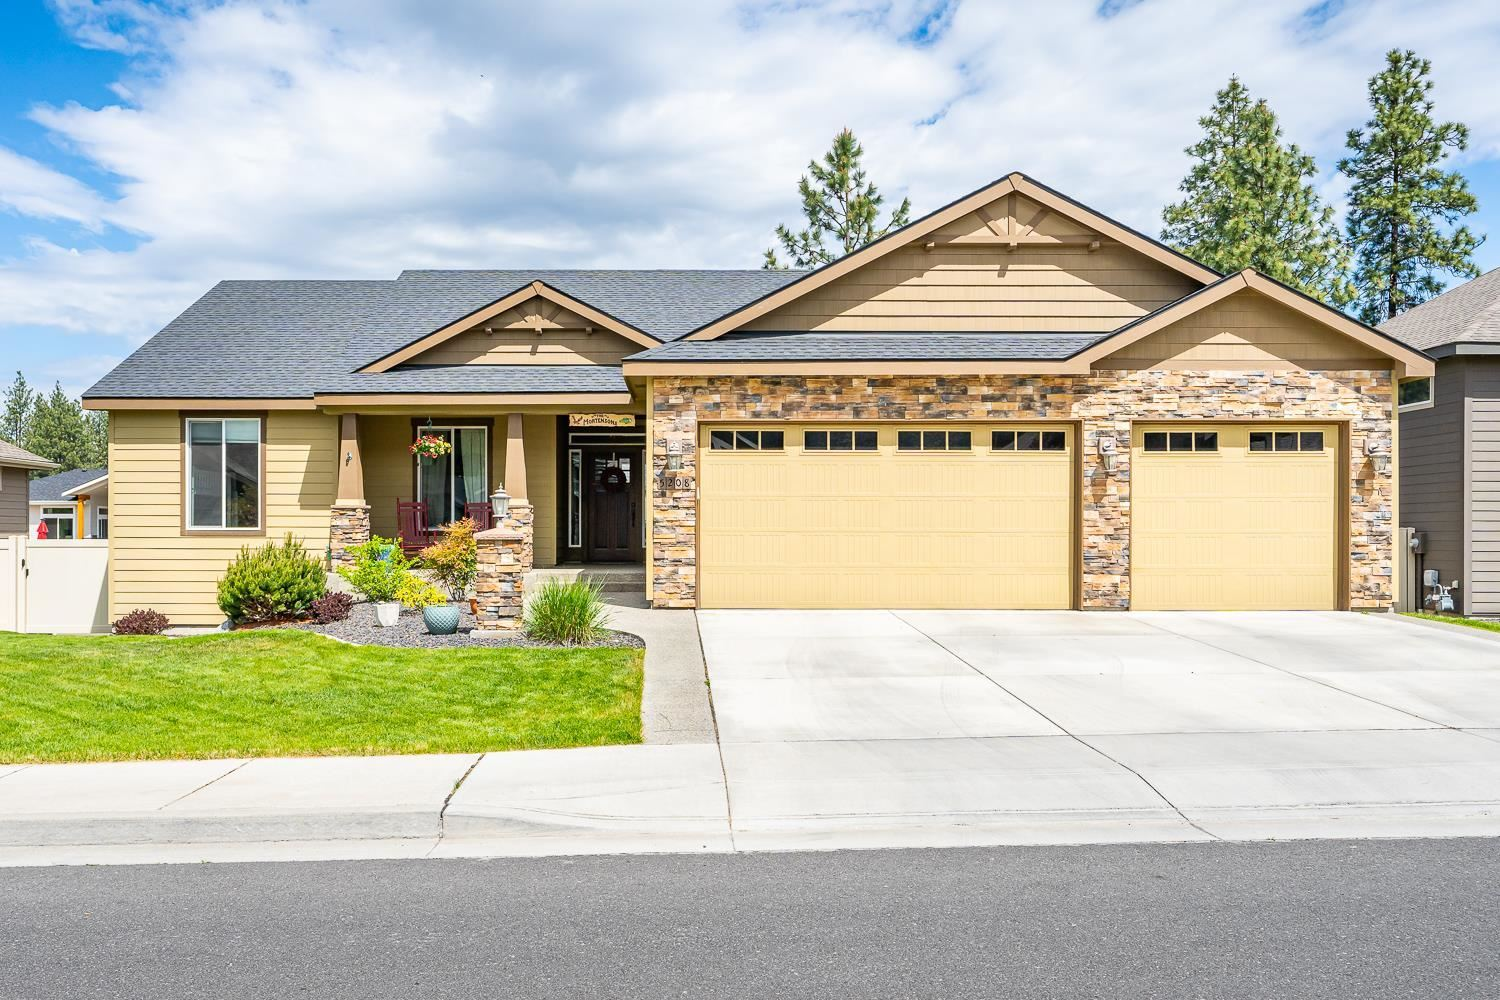 5208 W Oxford Ave, Spokane, WA 99208 - #: 202115395